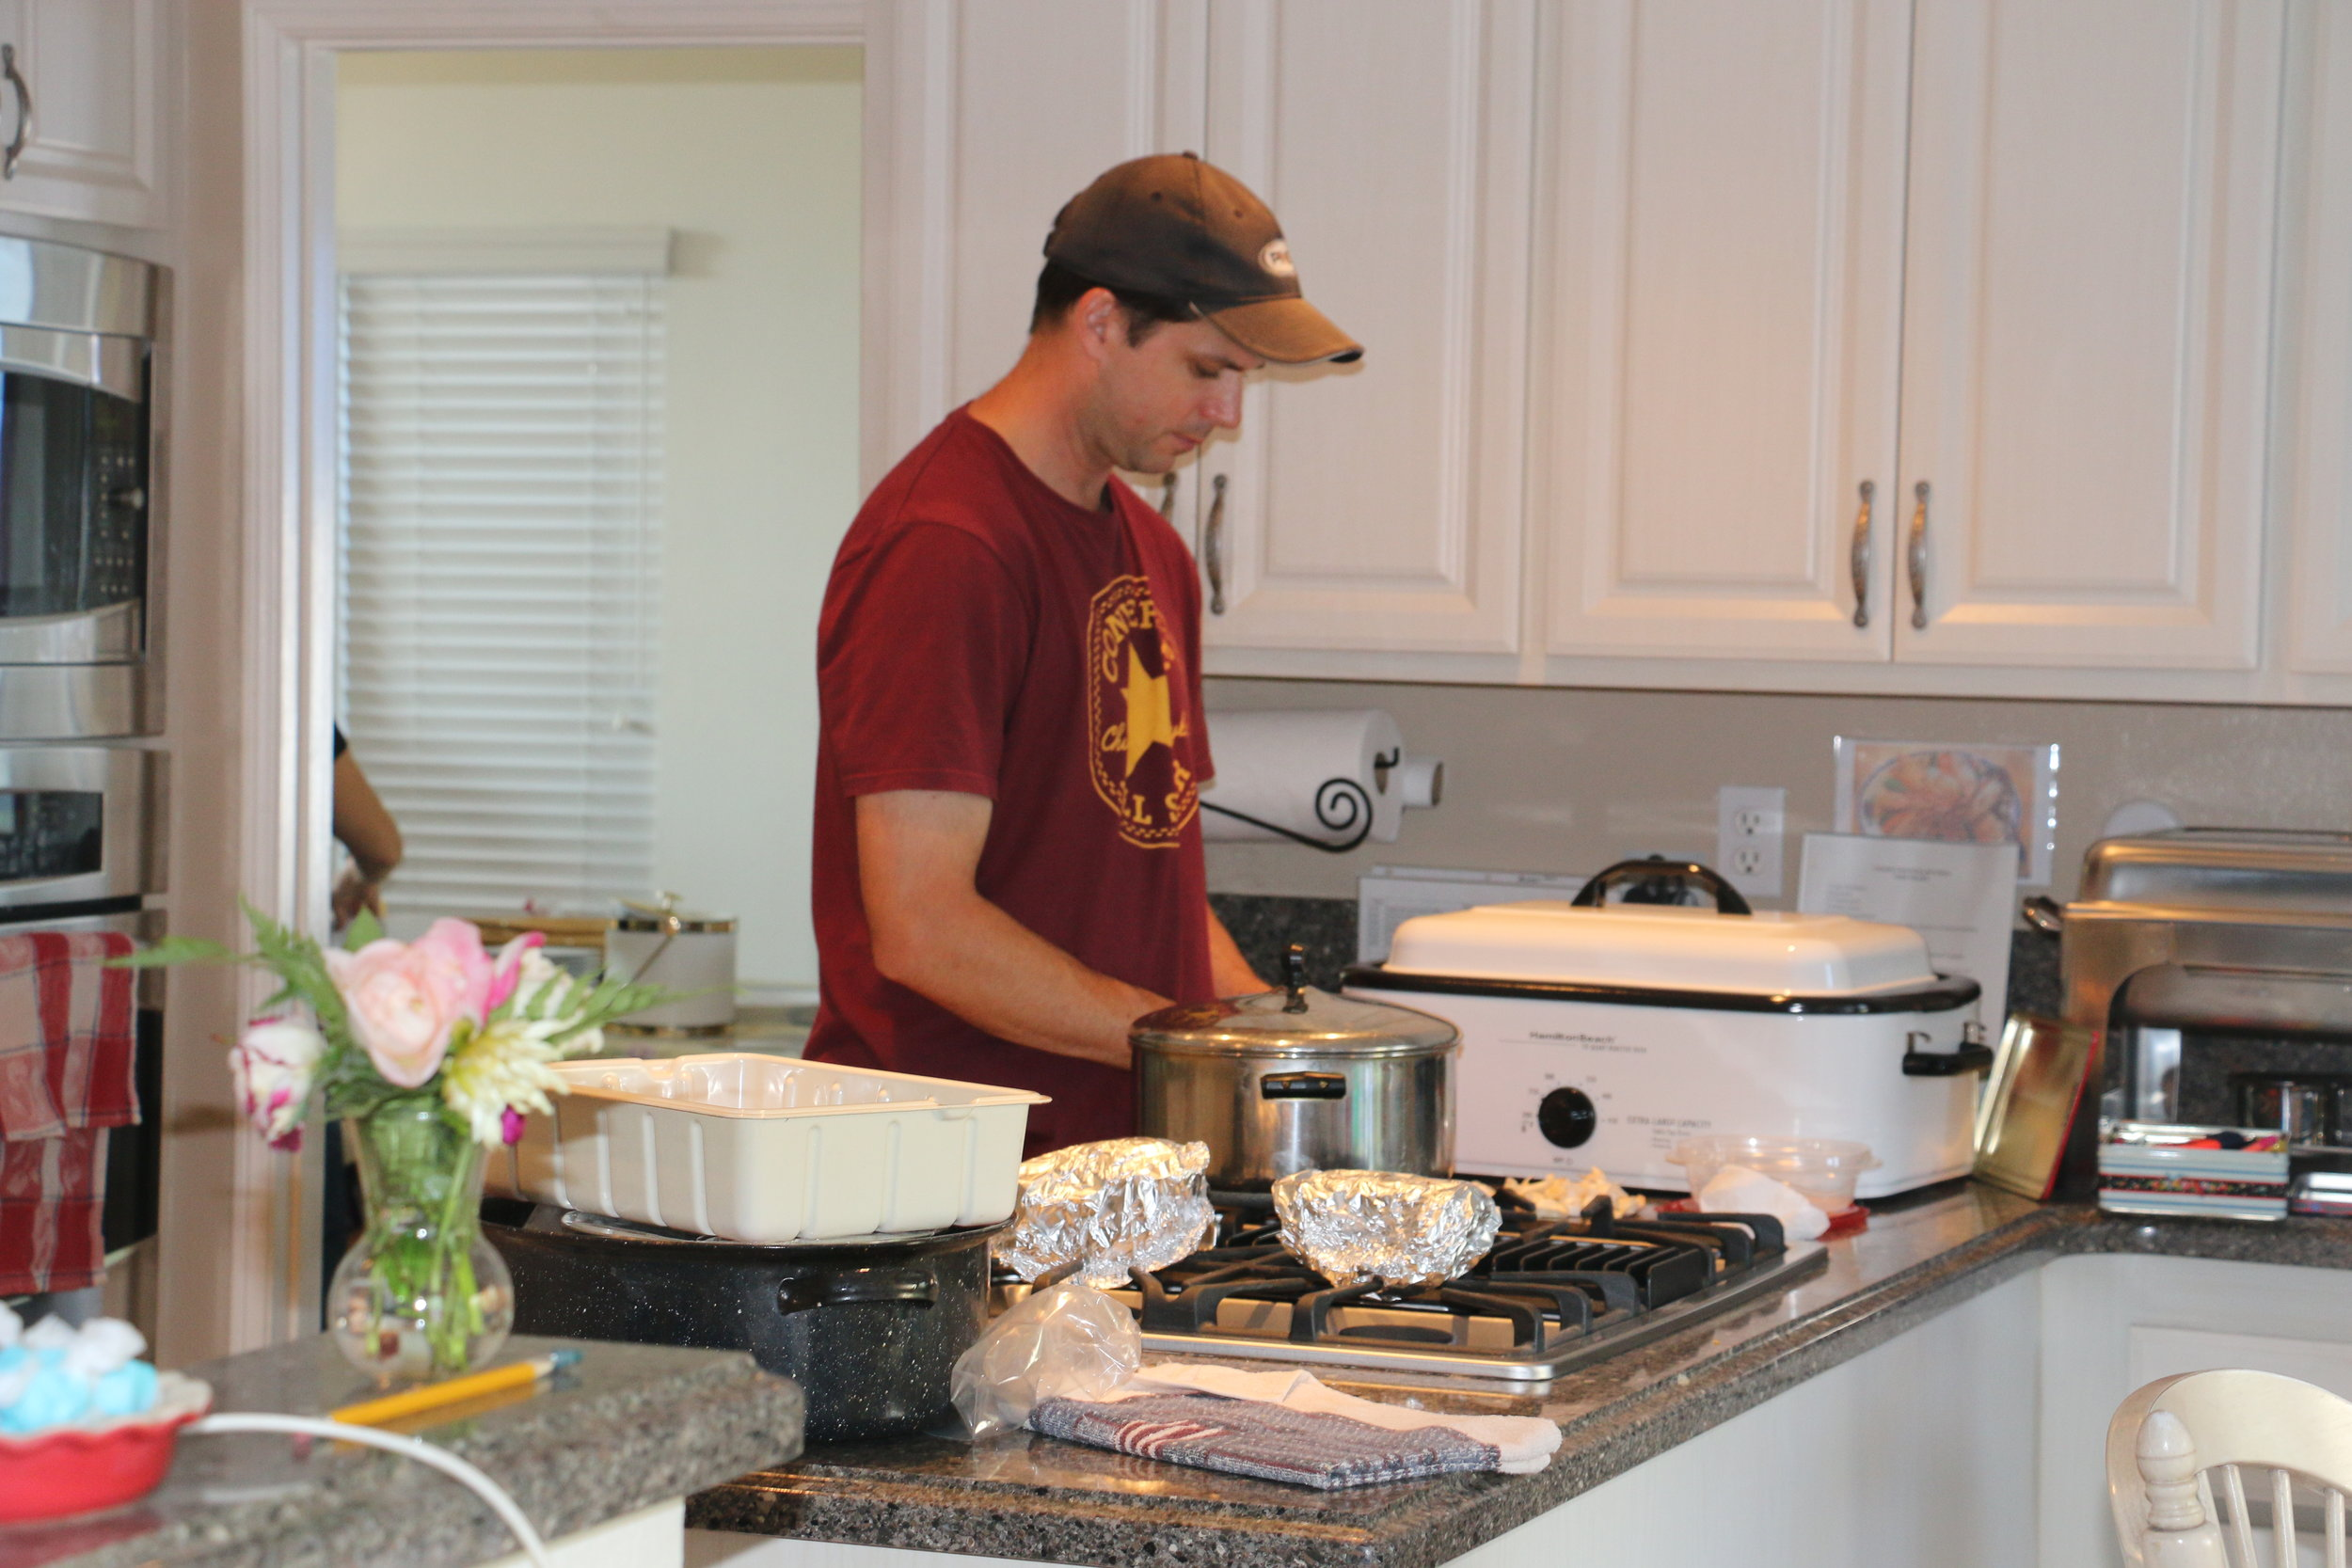 Volunteering in the kitchen for the Feast of Tabernacles Dinner